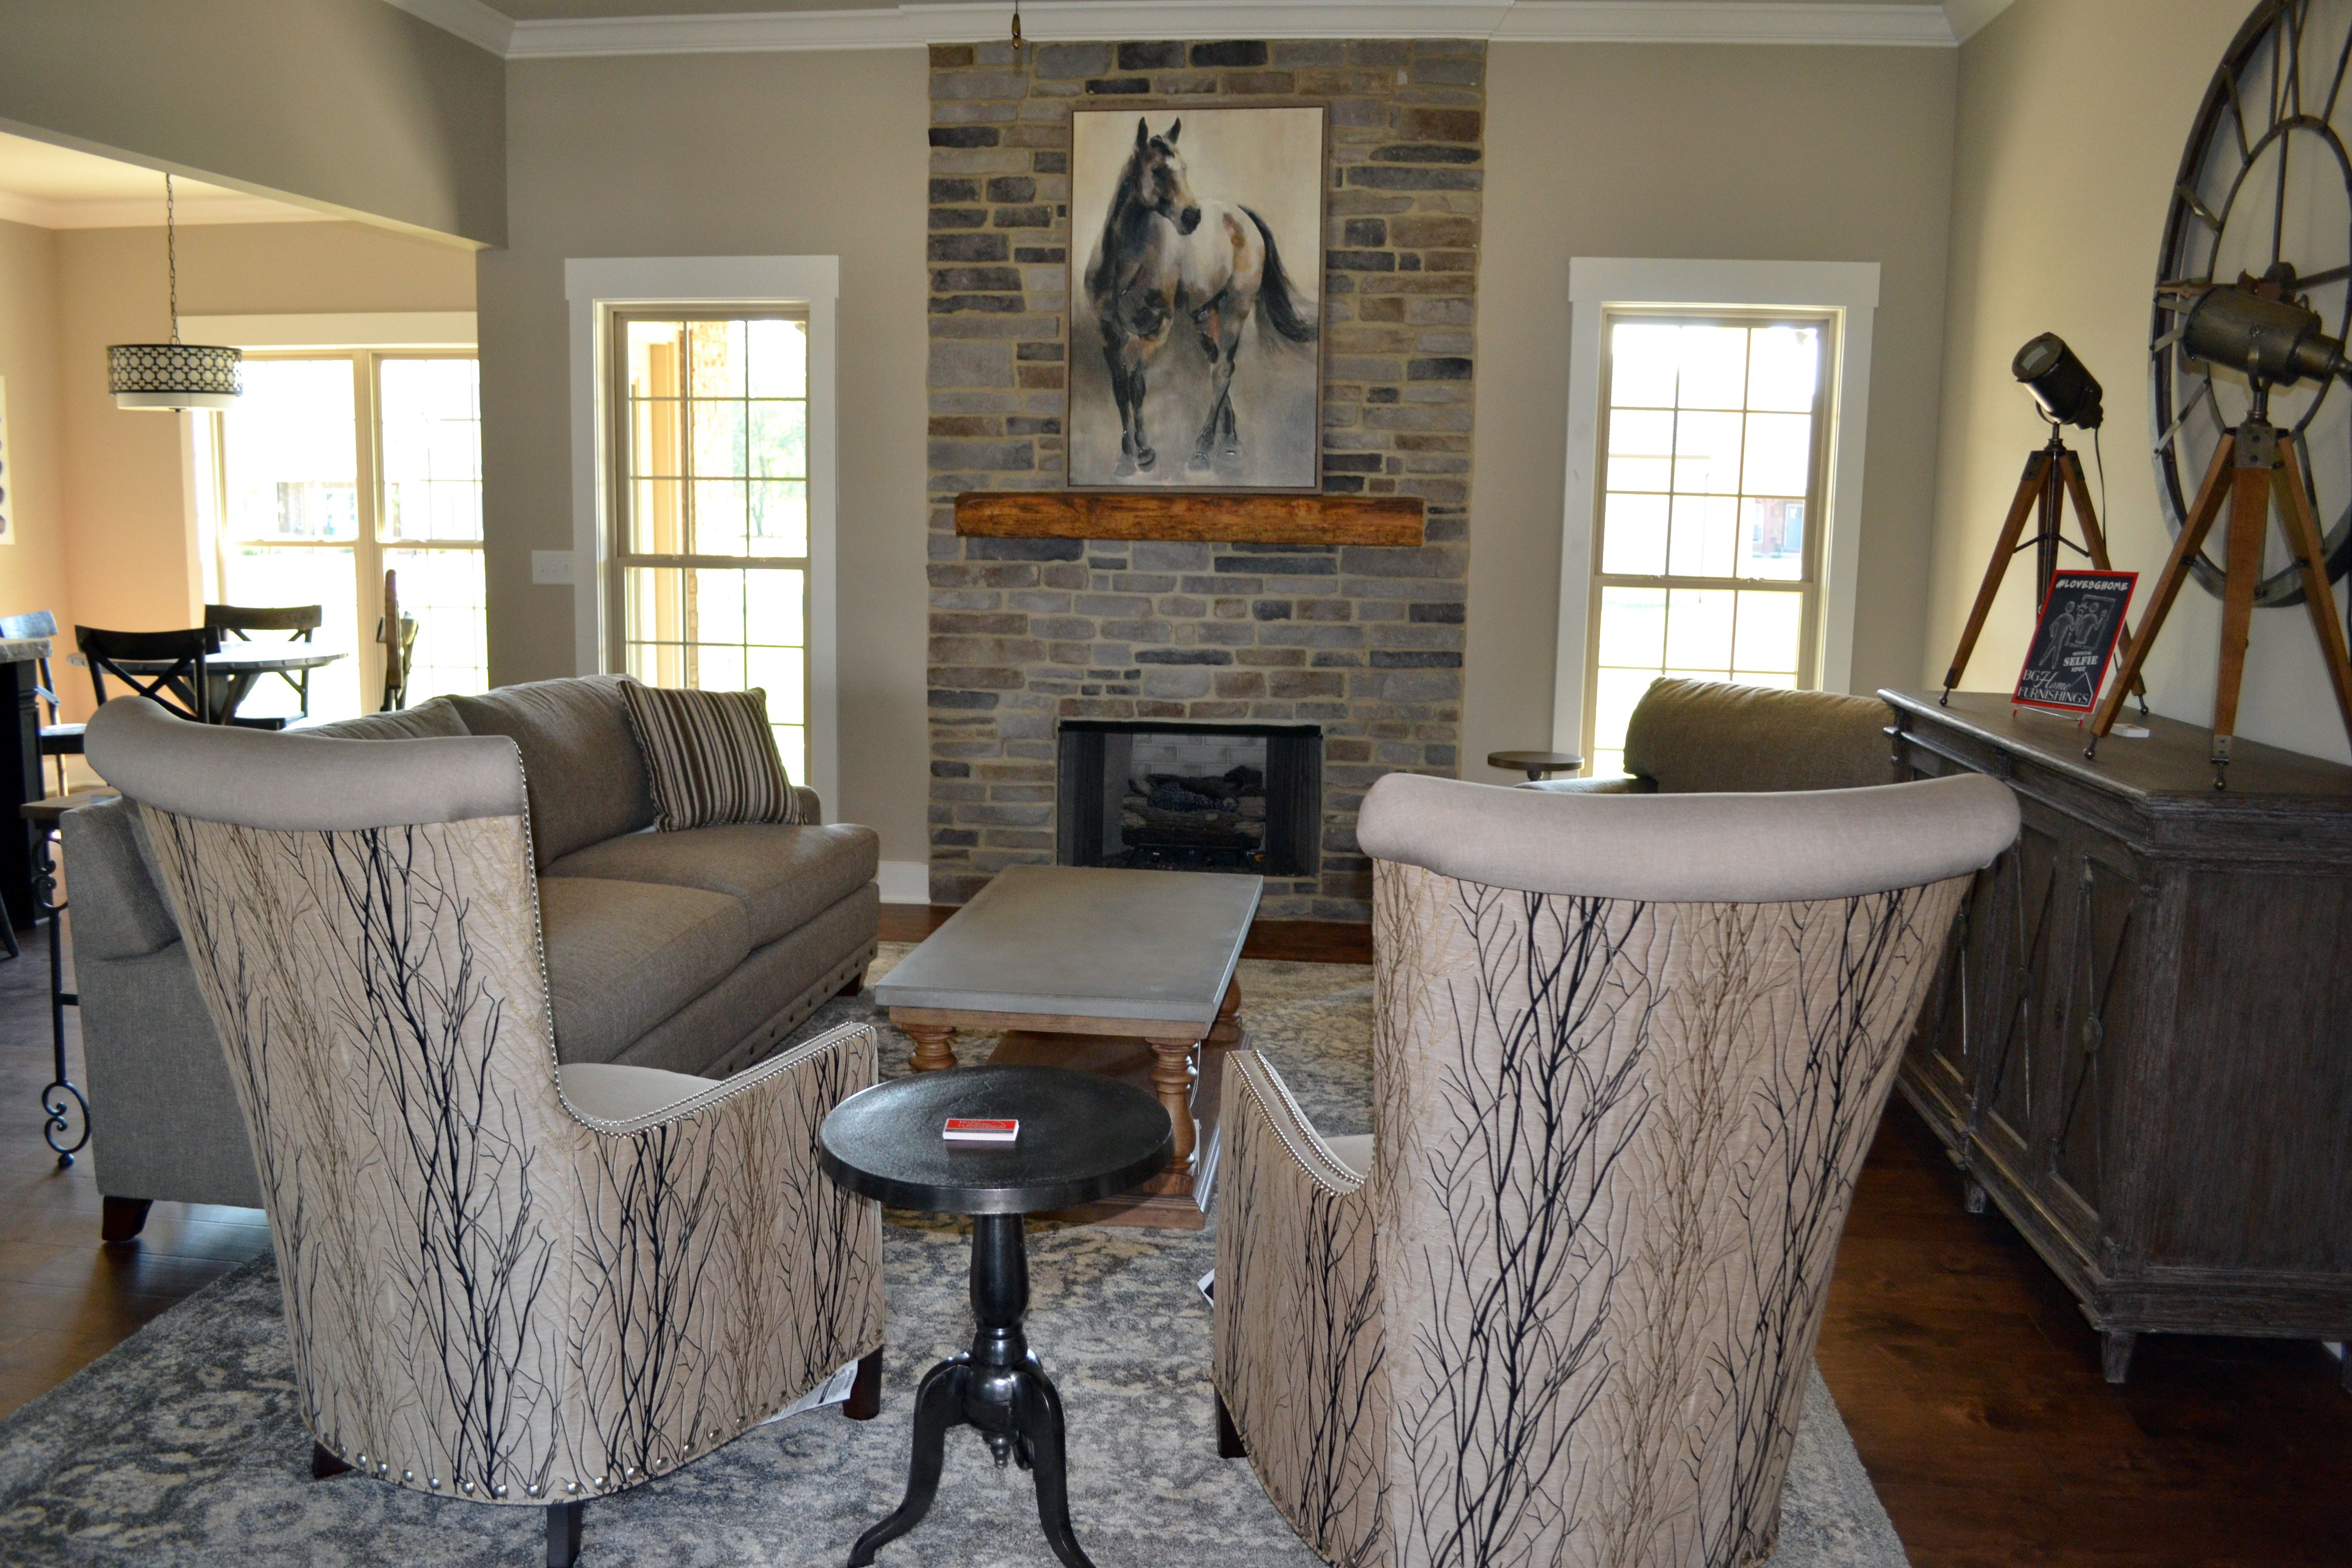 2016 Parade Of Homes Bowling Green Ky Home Parade Of Homes Home Furnishings